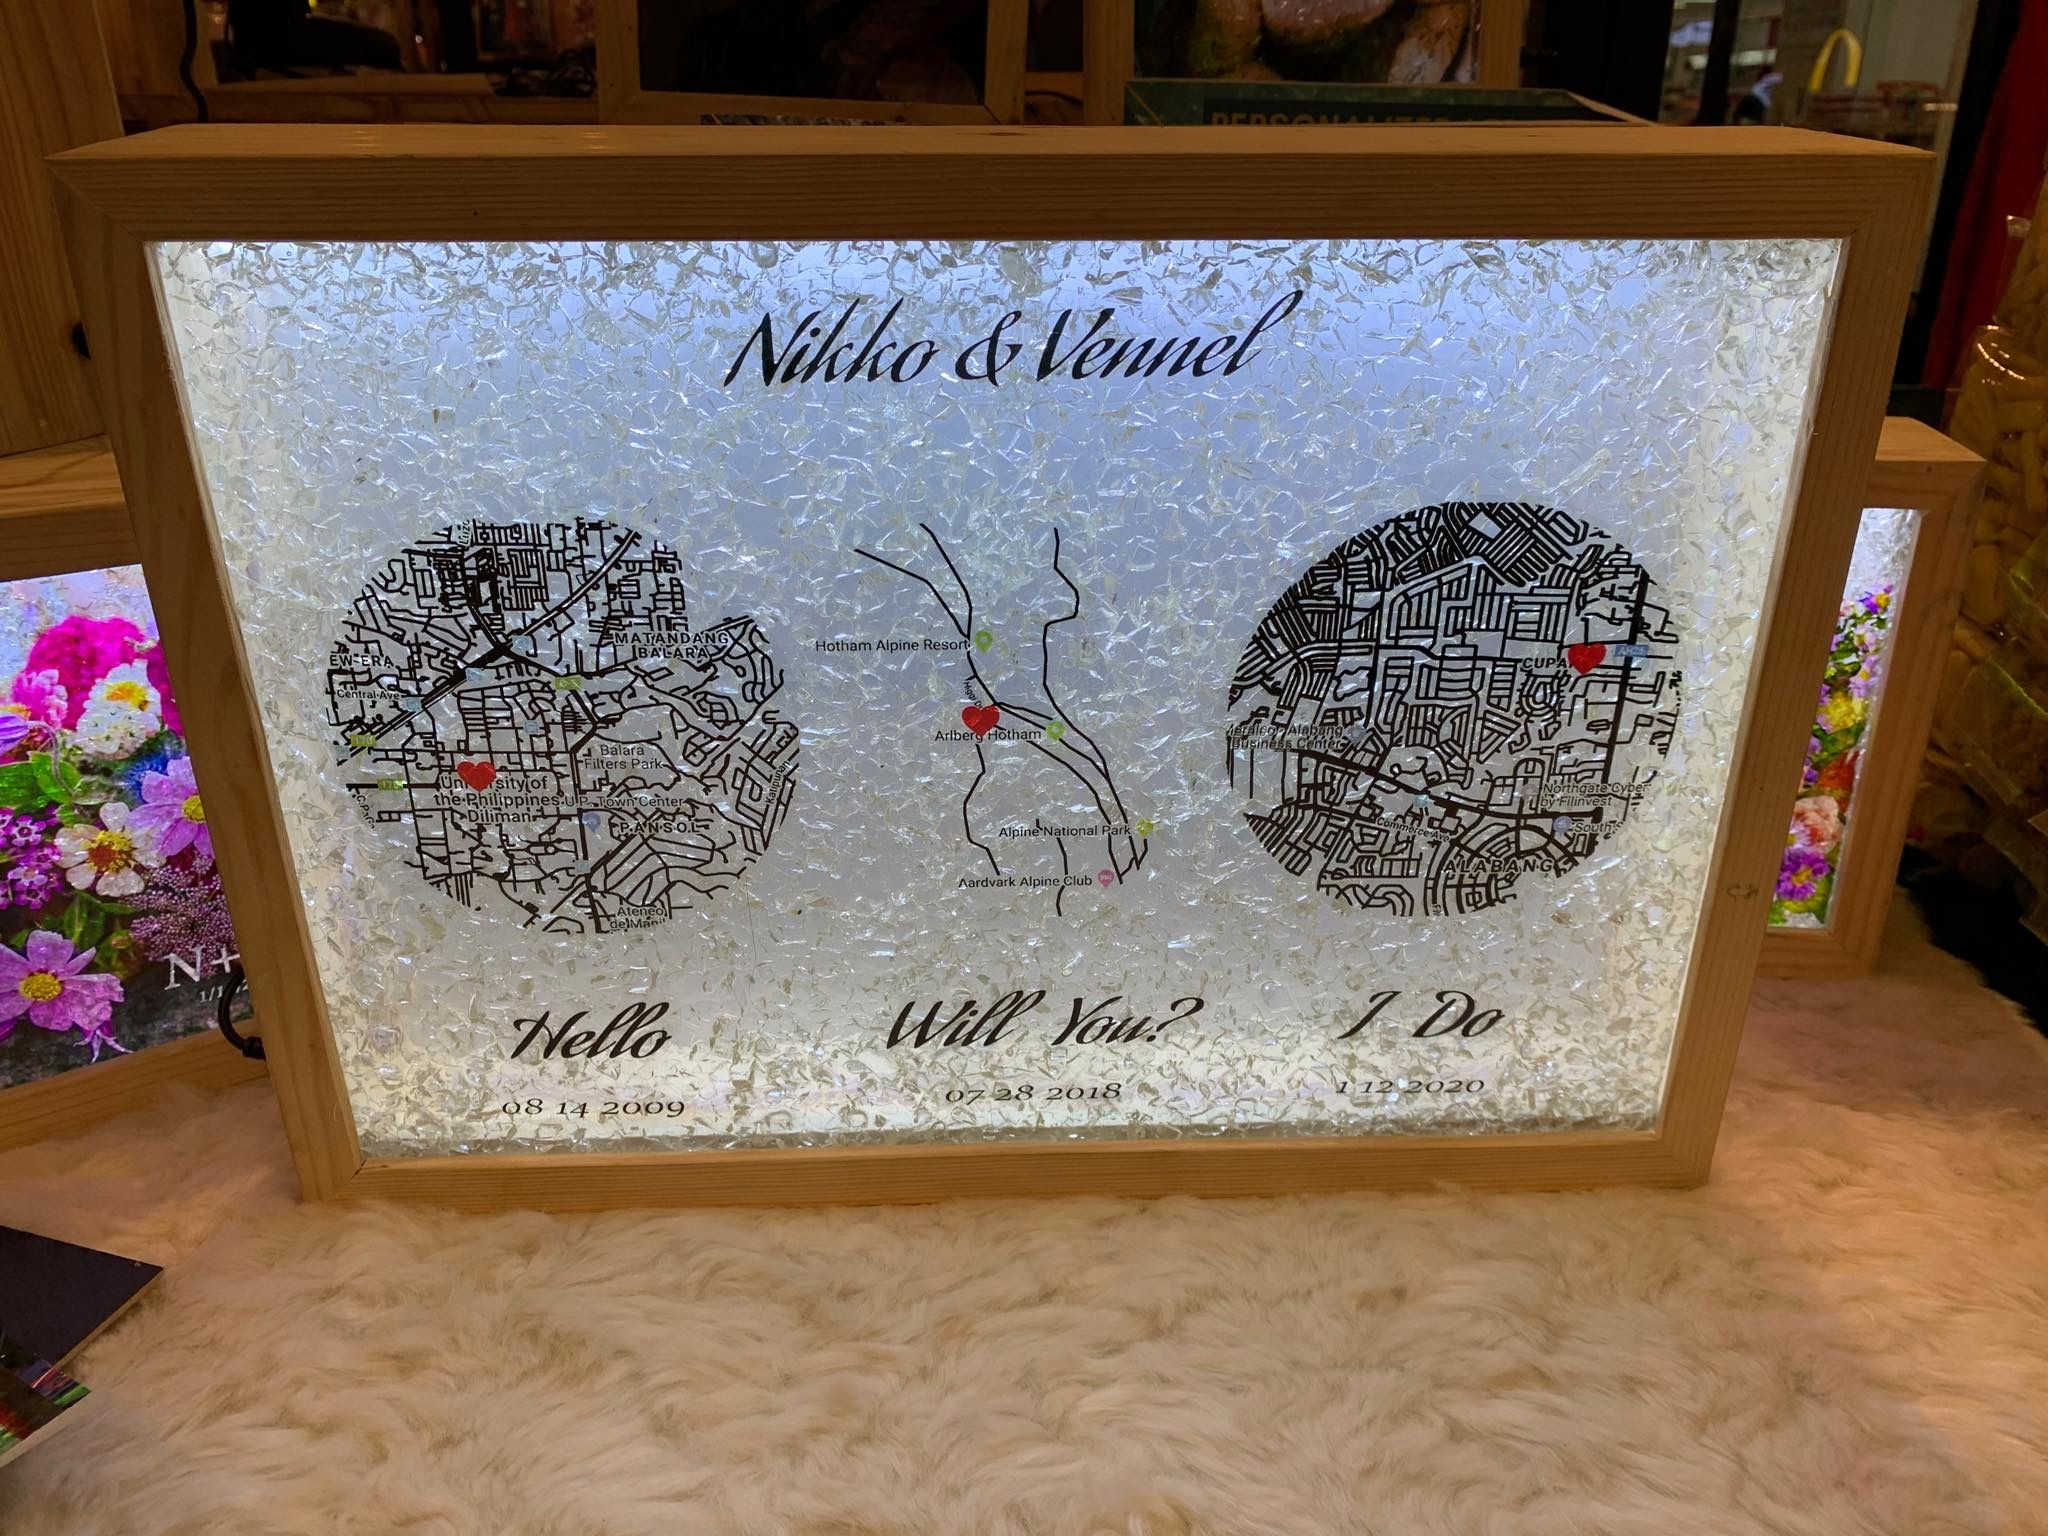 Weddings Customized Led Lamp In 2020 Upcycle Glass Personalized Gift Items Customized Gifts